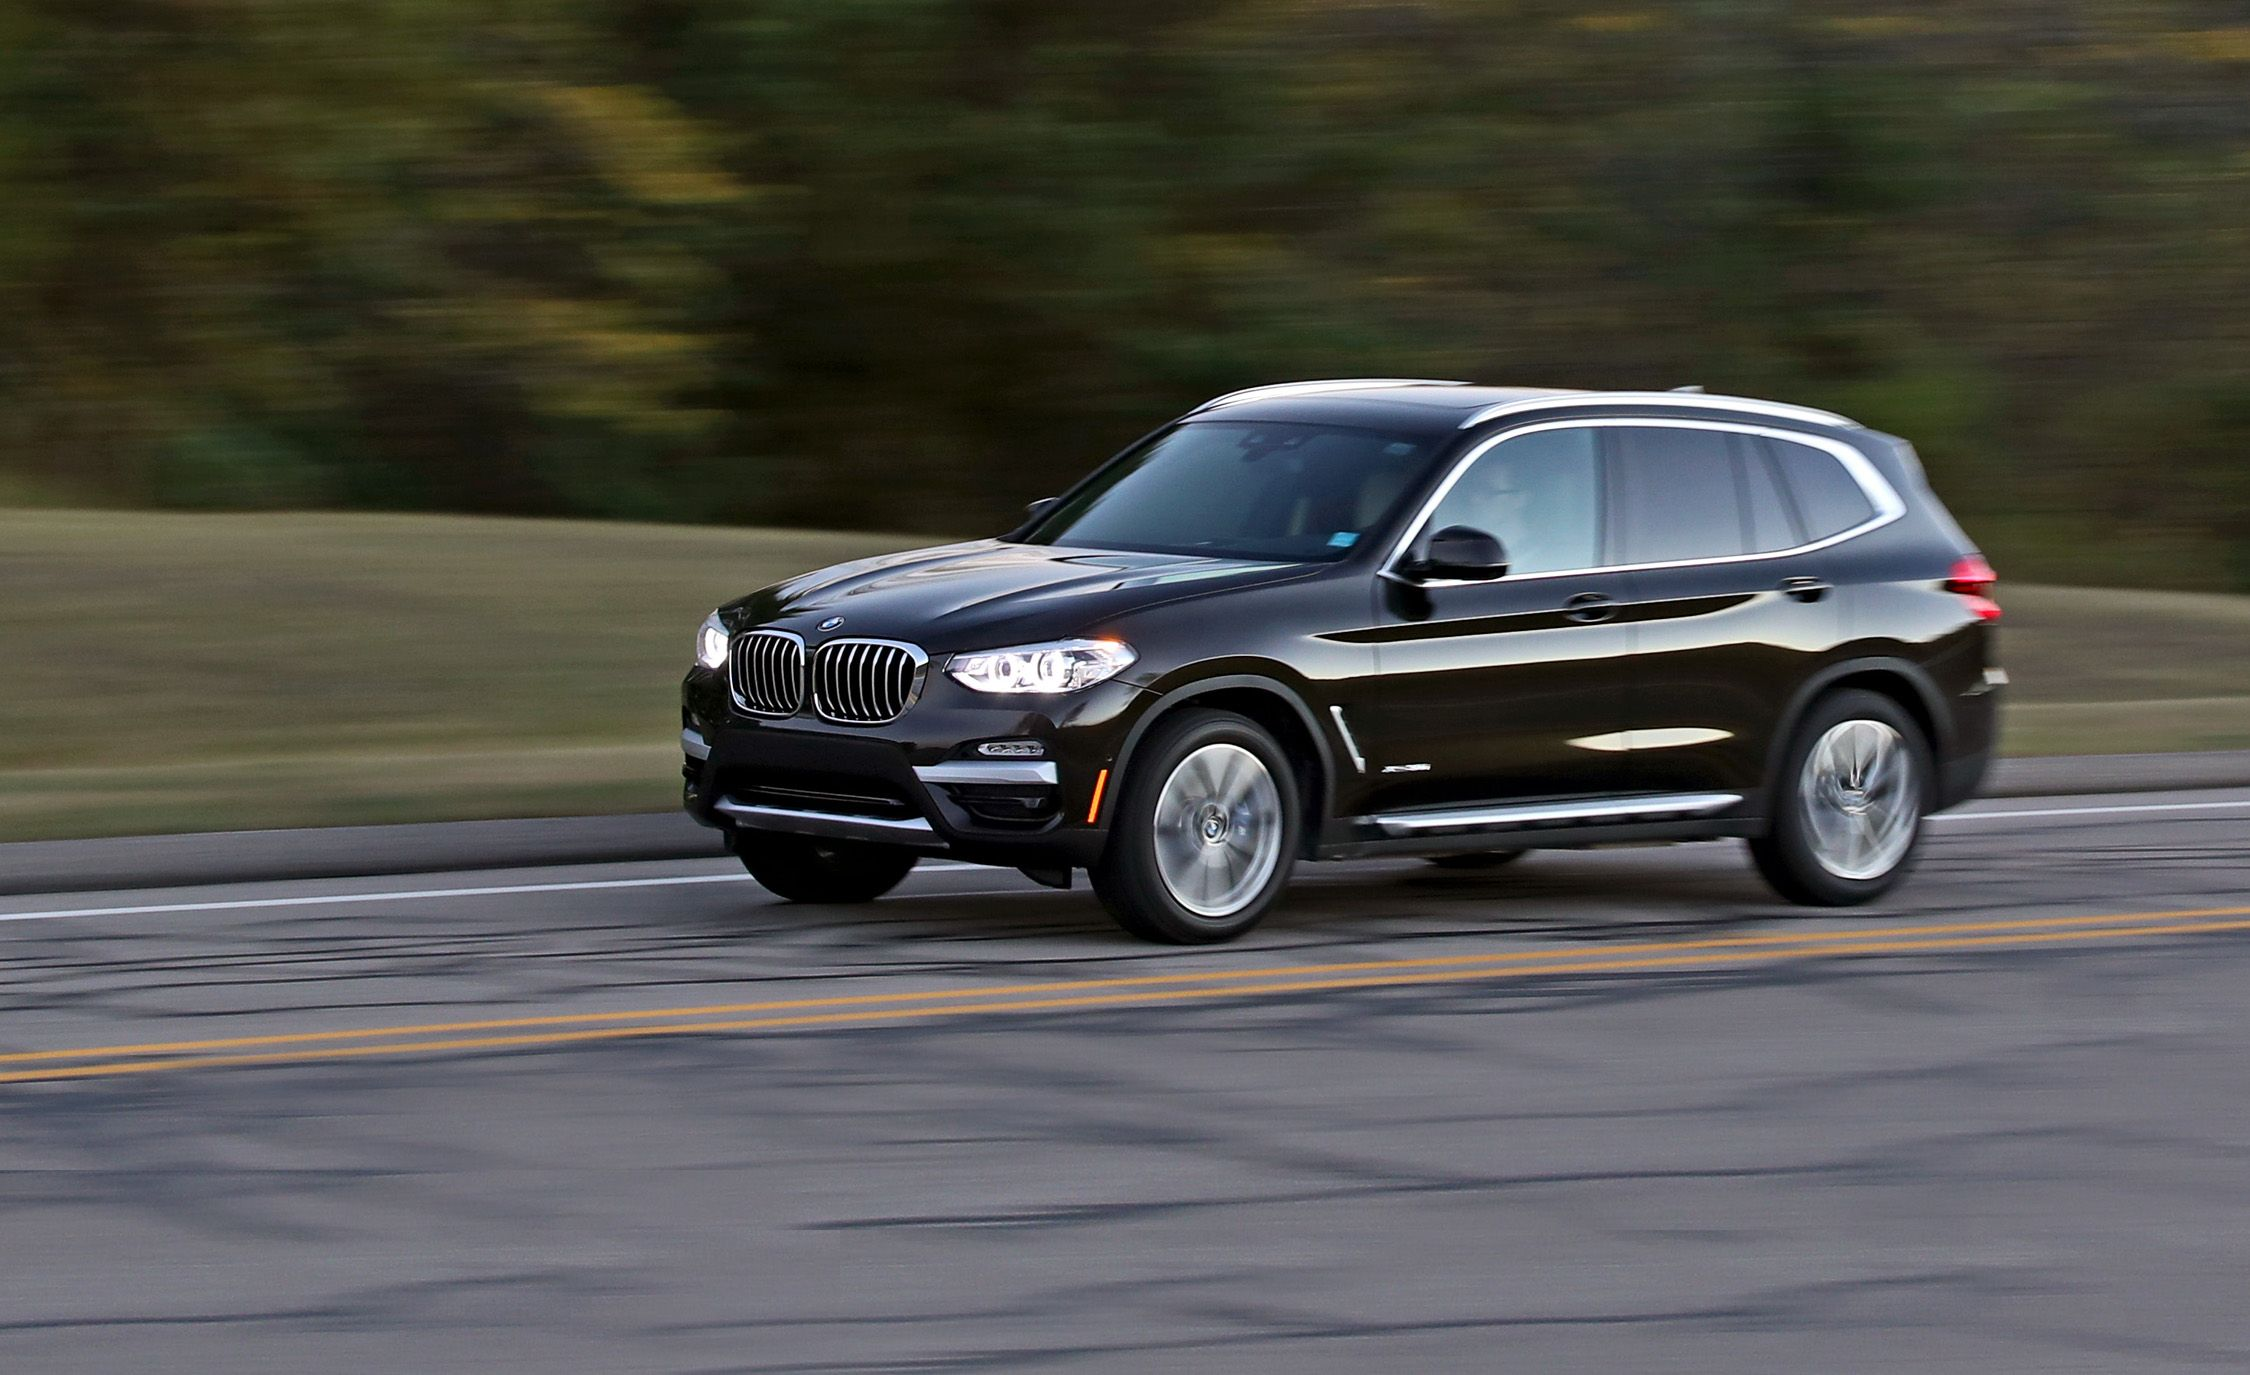 2018 Bmw X3 Xdrive30i Test Review Car And Driver